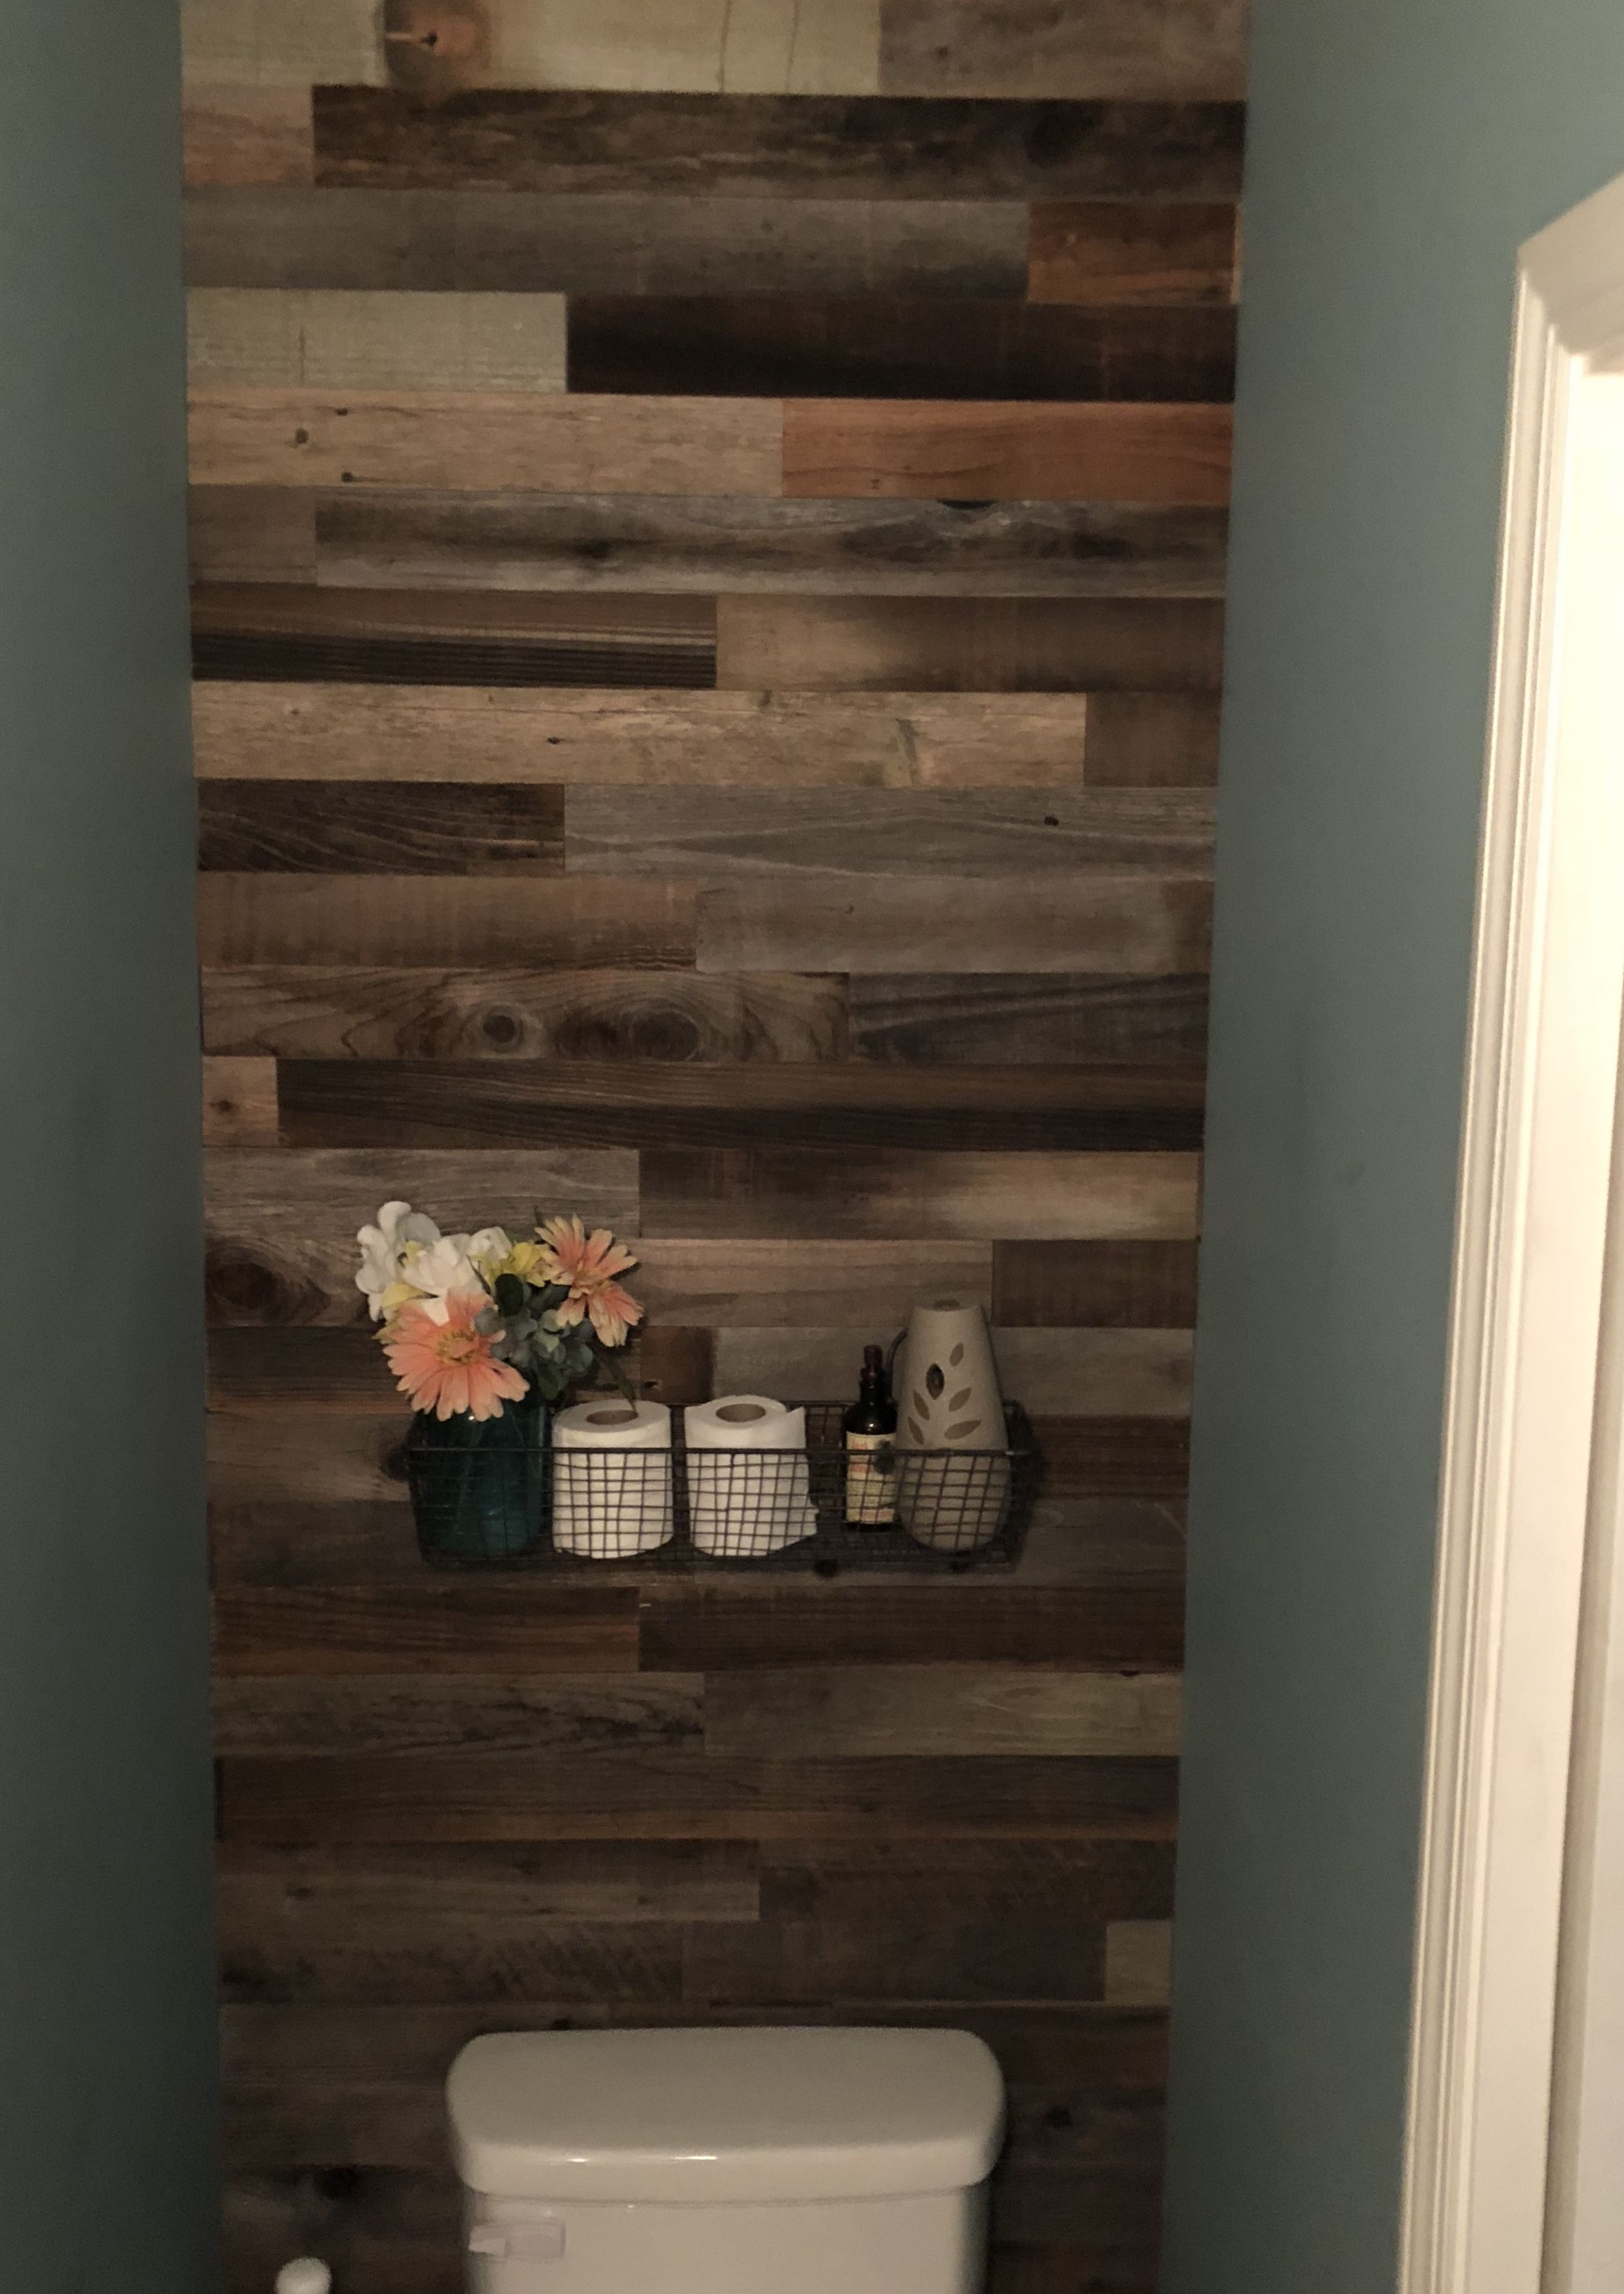 Just Finished My Bathroom Wall From Wooden Sign To Walls Epicartifactorydiyreclaimedbarnwood